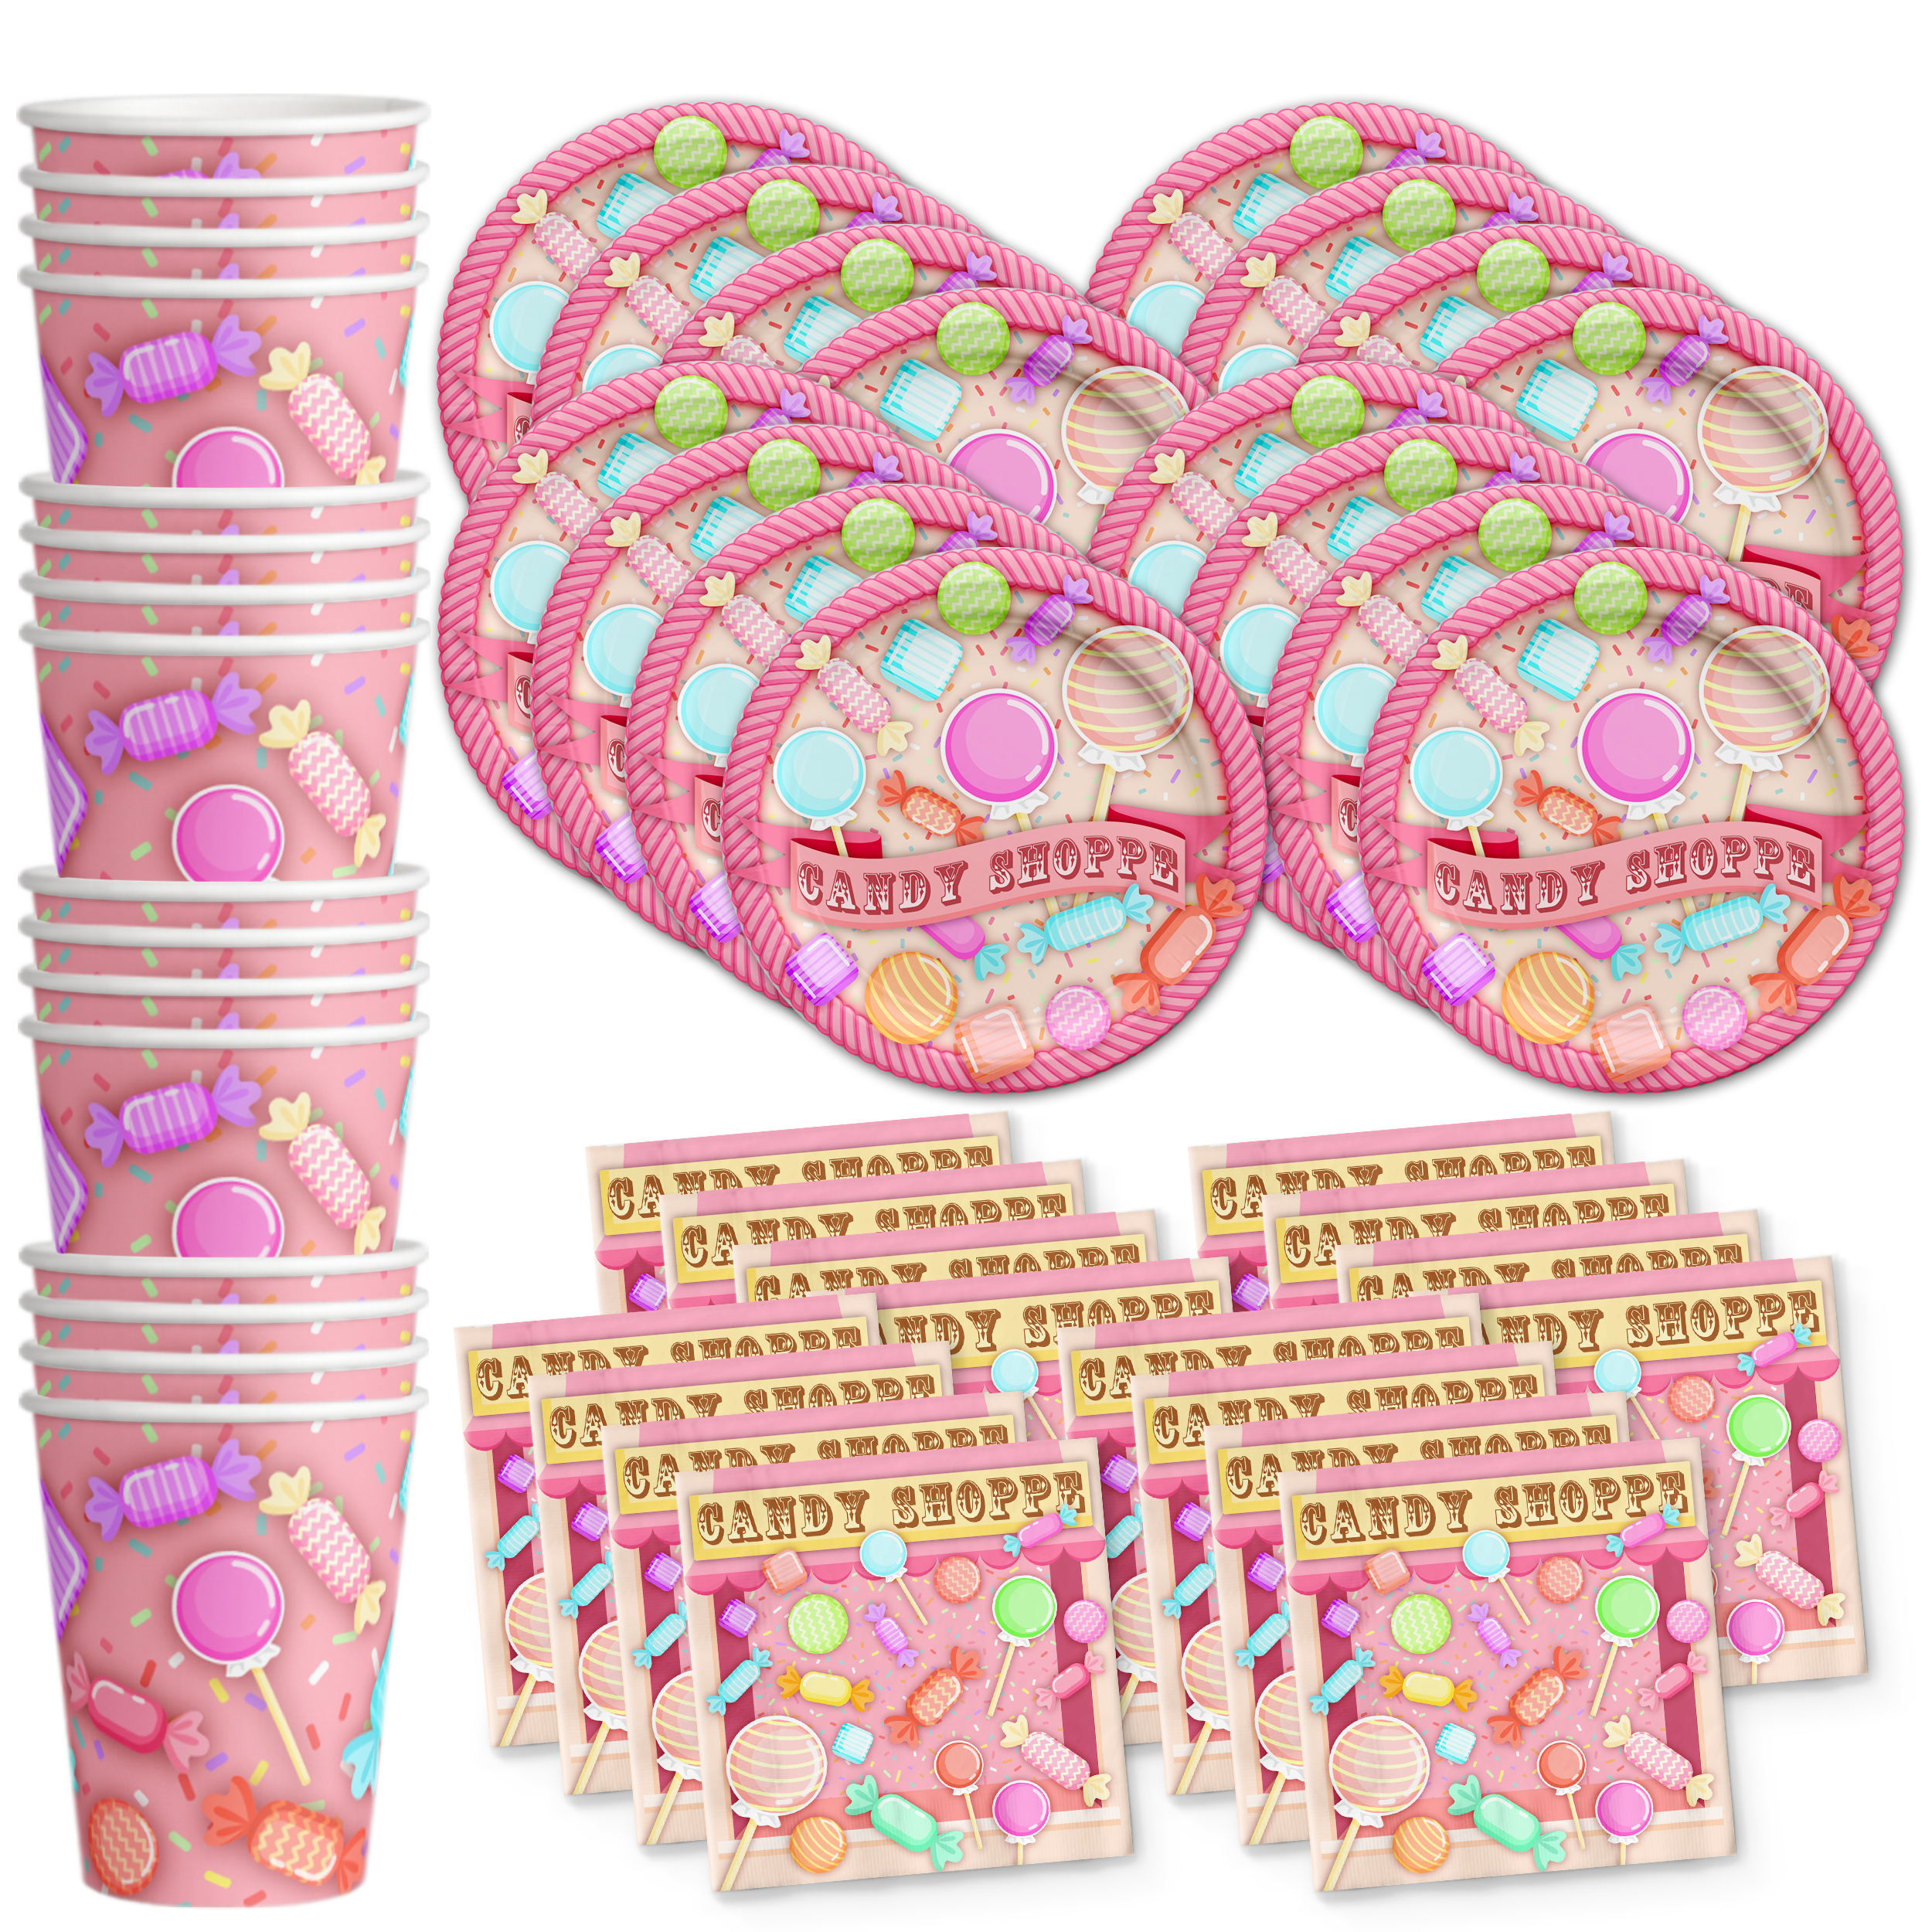 Candy Shoppe Birthday Party Tableware Kit For 16 Guests - BirthdayGalore.com